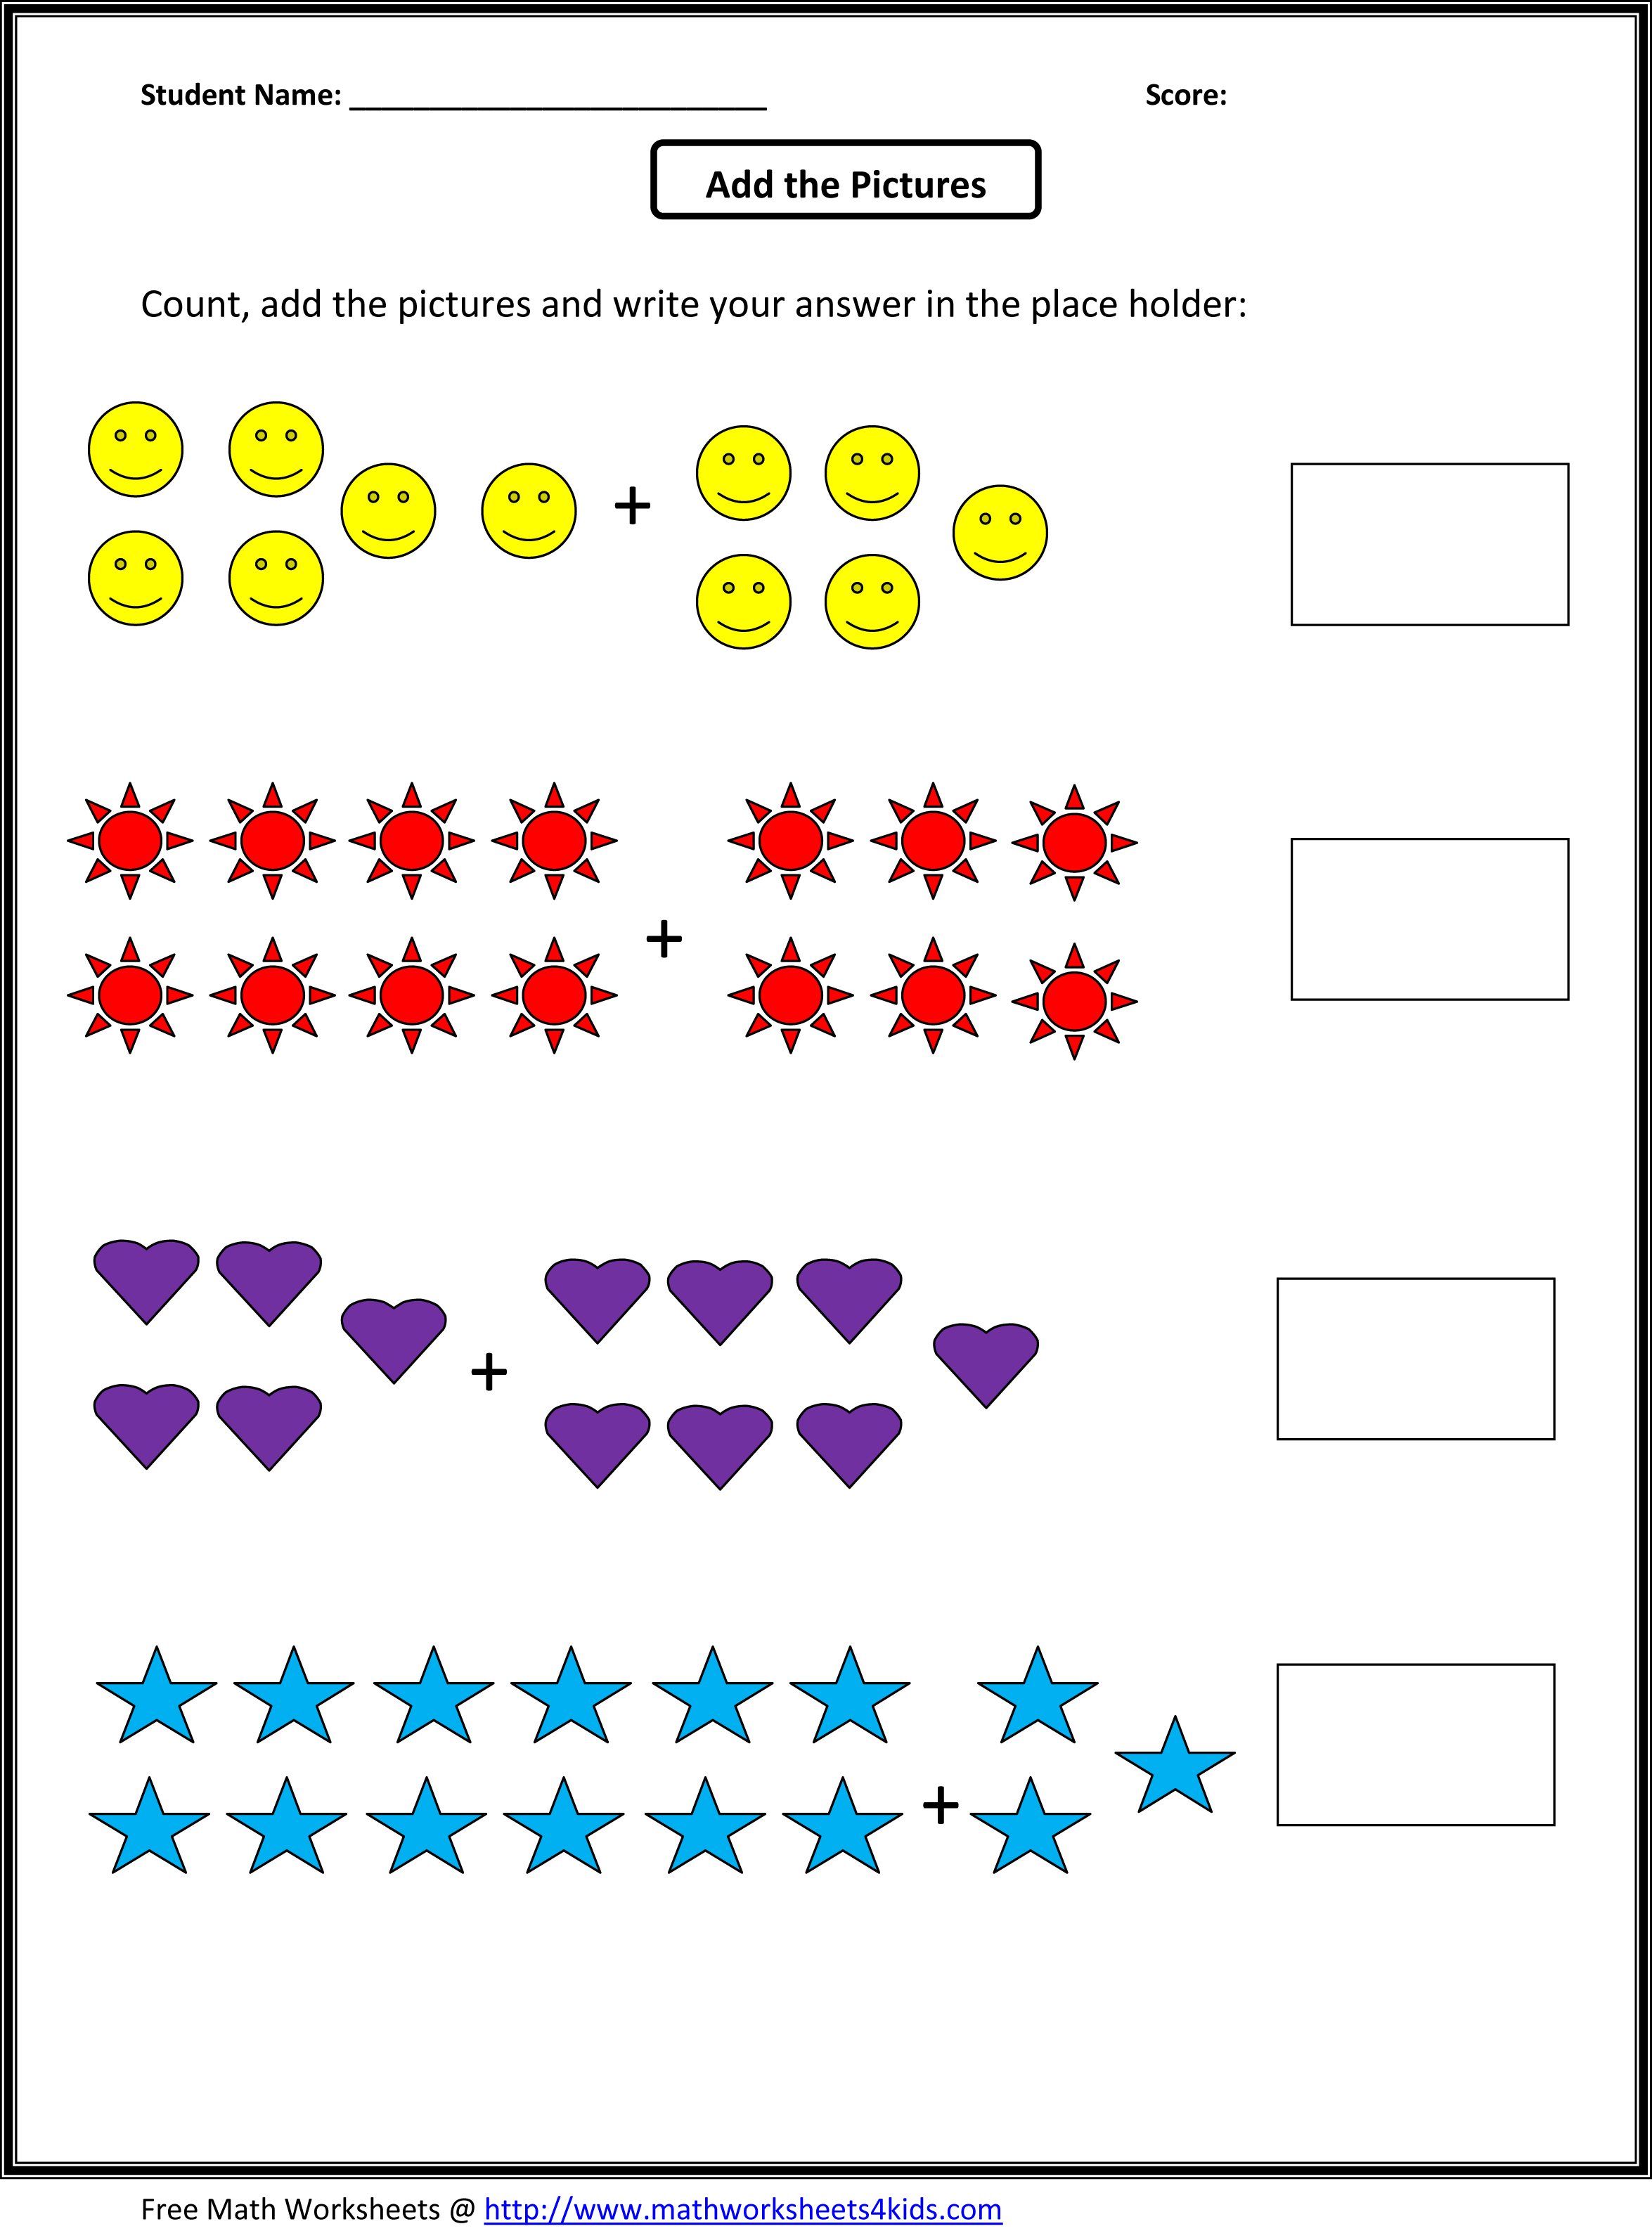 Weirdmailus  Surprising Grade  Maths Worksheet  Reocurent With Foxy Math Worksheets For St Grade Free  Reocurent With Attractive Compound Subjects And Verbs Worksheet Also Adding  Worksheet In Addition Density Questions Worksheet And Noun Worksheets First Grade As Well As Multiplication Lattice Worksheets Additionally Right Angle Worksheets From Reocurentcom With Weirdmailus  Foxy Grade  Maths Worksheet  Reocurent With Attractive Math Worksheets For St Grade Free  Reocurent And Surprising Compound Subjects And Verbs Worksheet Also Adding  Worksheet In Addition Density Questions Worksheet From Reocurentcom